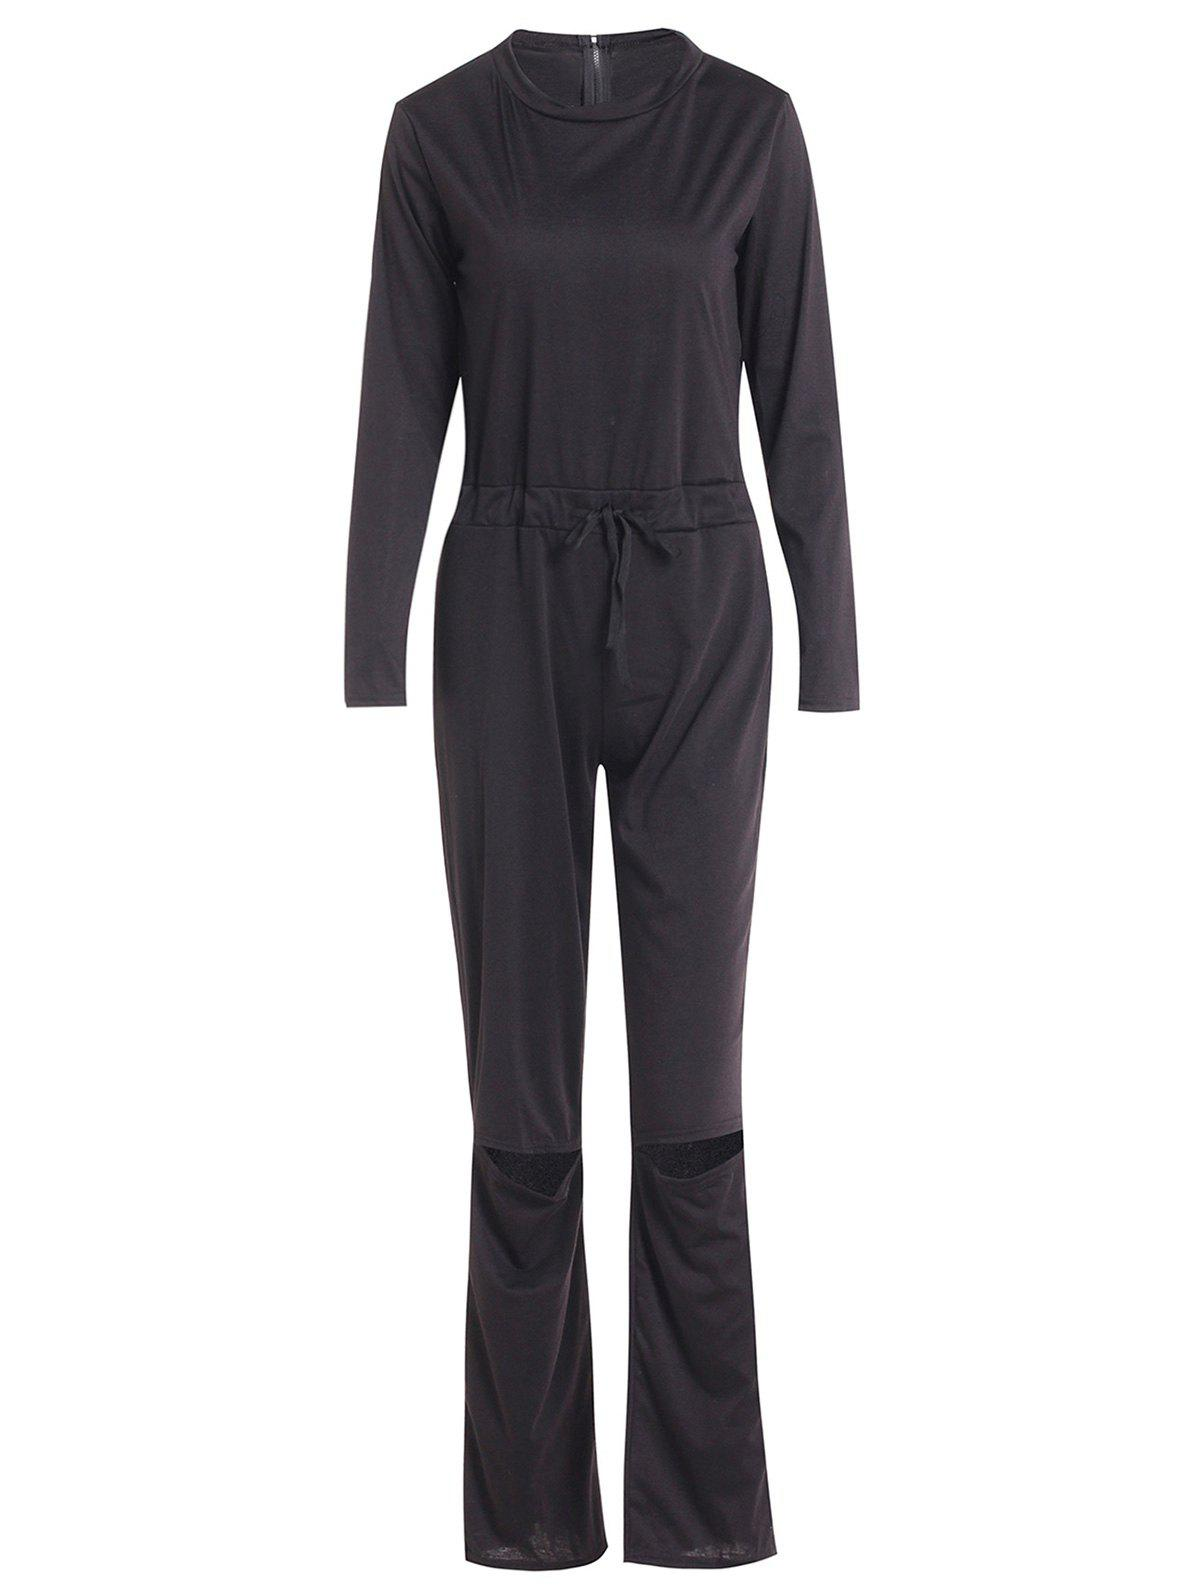 Vogue Women's Skew Collar Broken Hole Long Sleeve Jumpsuit